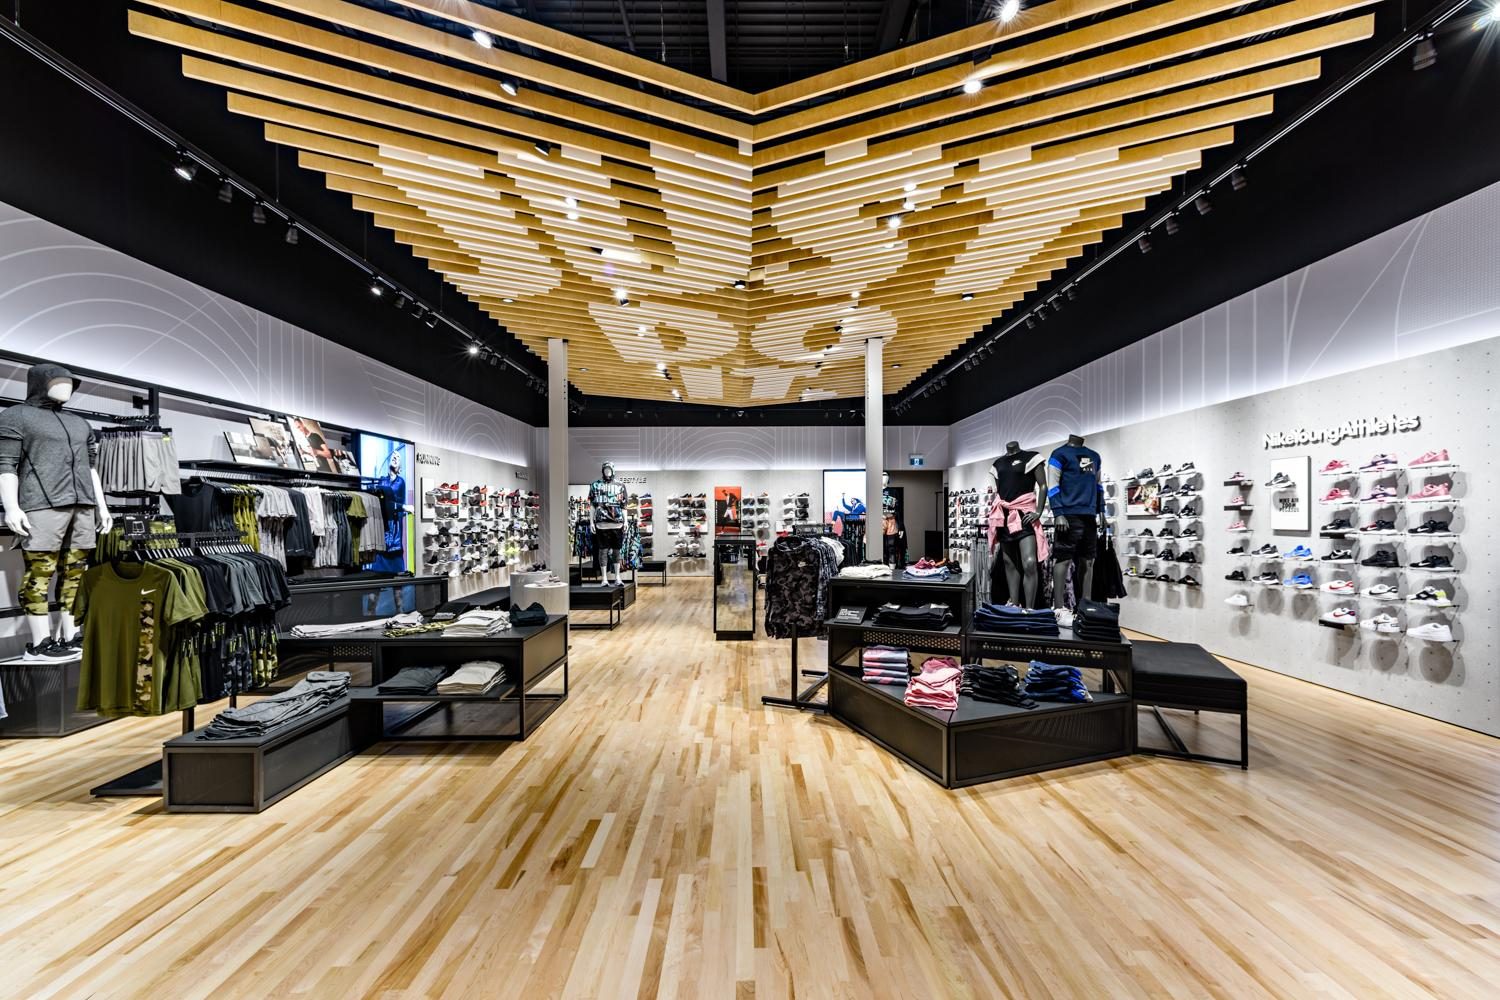 Nike retail store in Yorkdale Mall featuring dropped wooden slats on the ceiling with the words Just Do It.